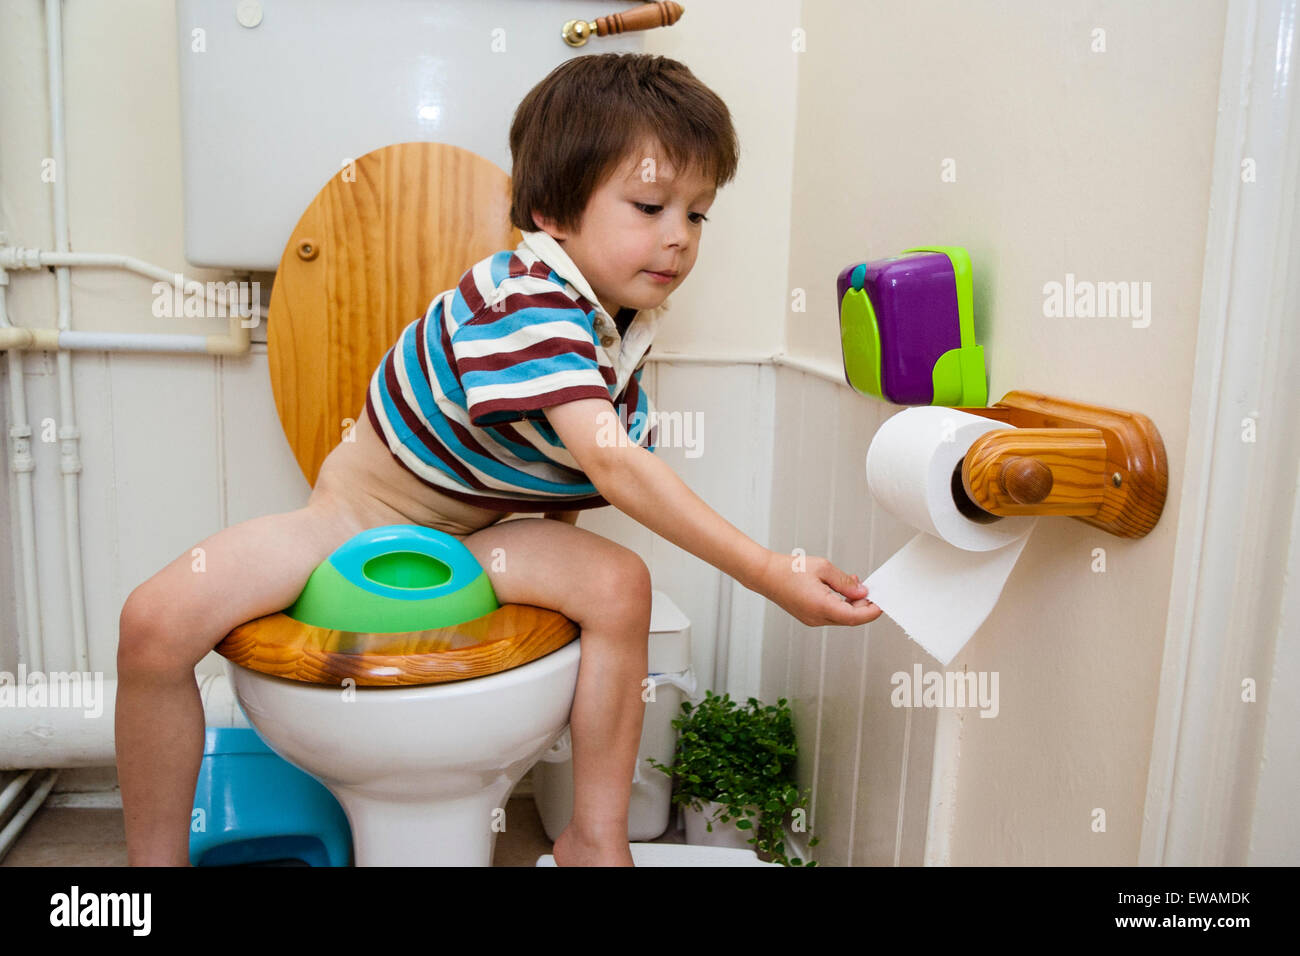 Pleasant 3 To 5 Year Old Caucasian Boy Sitting On Toilet Seat Front Bralicious Painted Fabric Chair Ideas Braliciousco